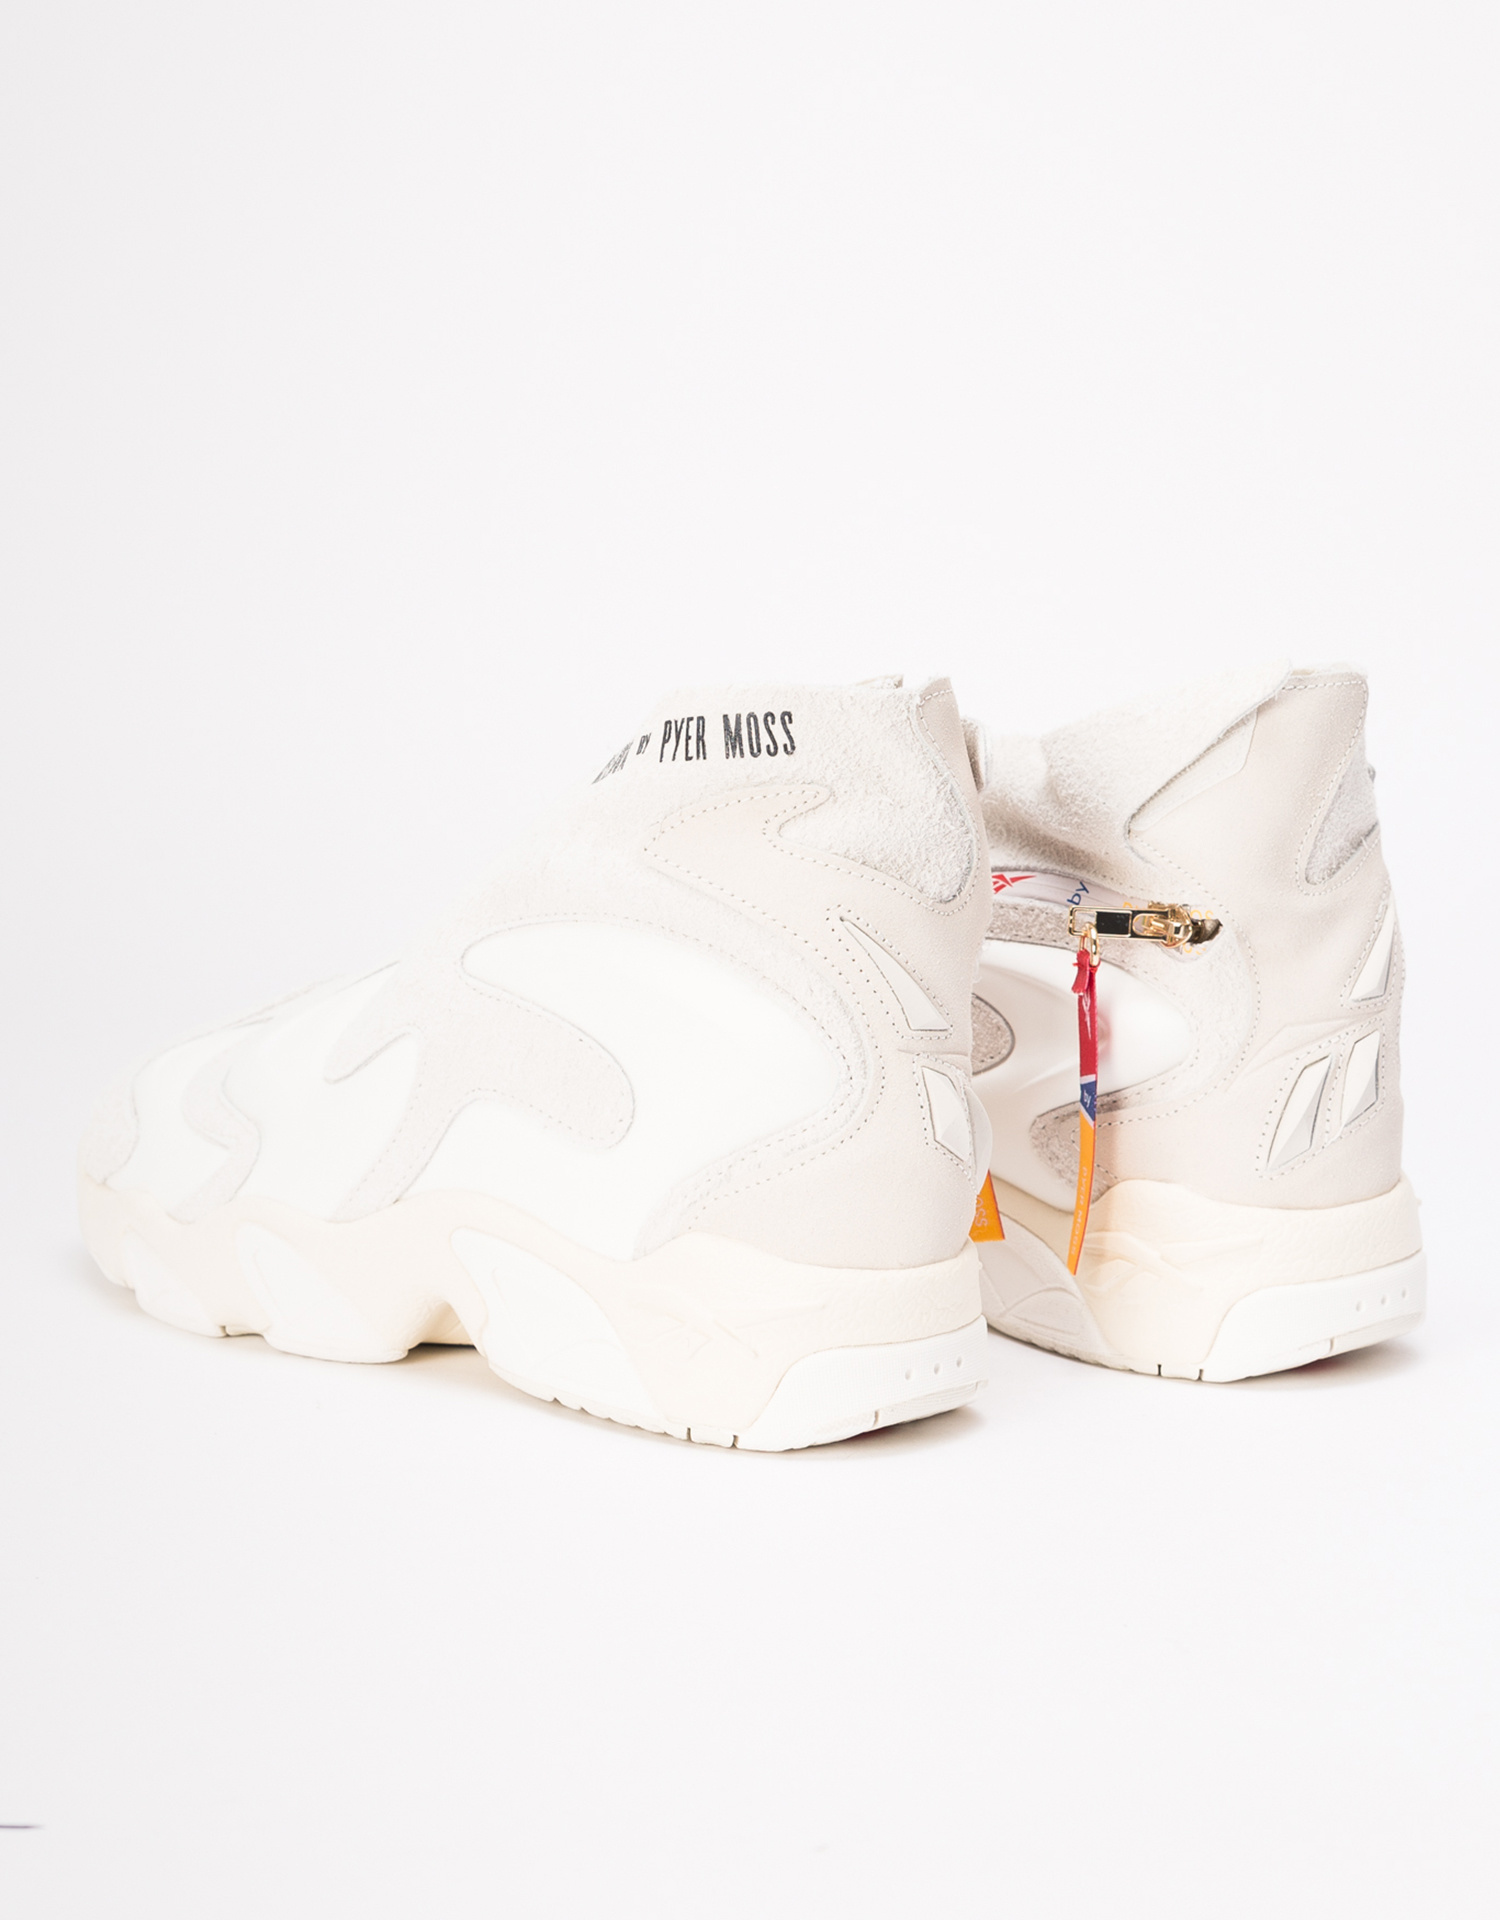 Reebok X Pyer Moss mobius experiment   chalk/papwht/goldmt